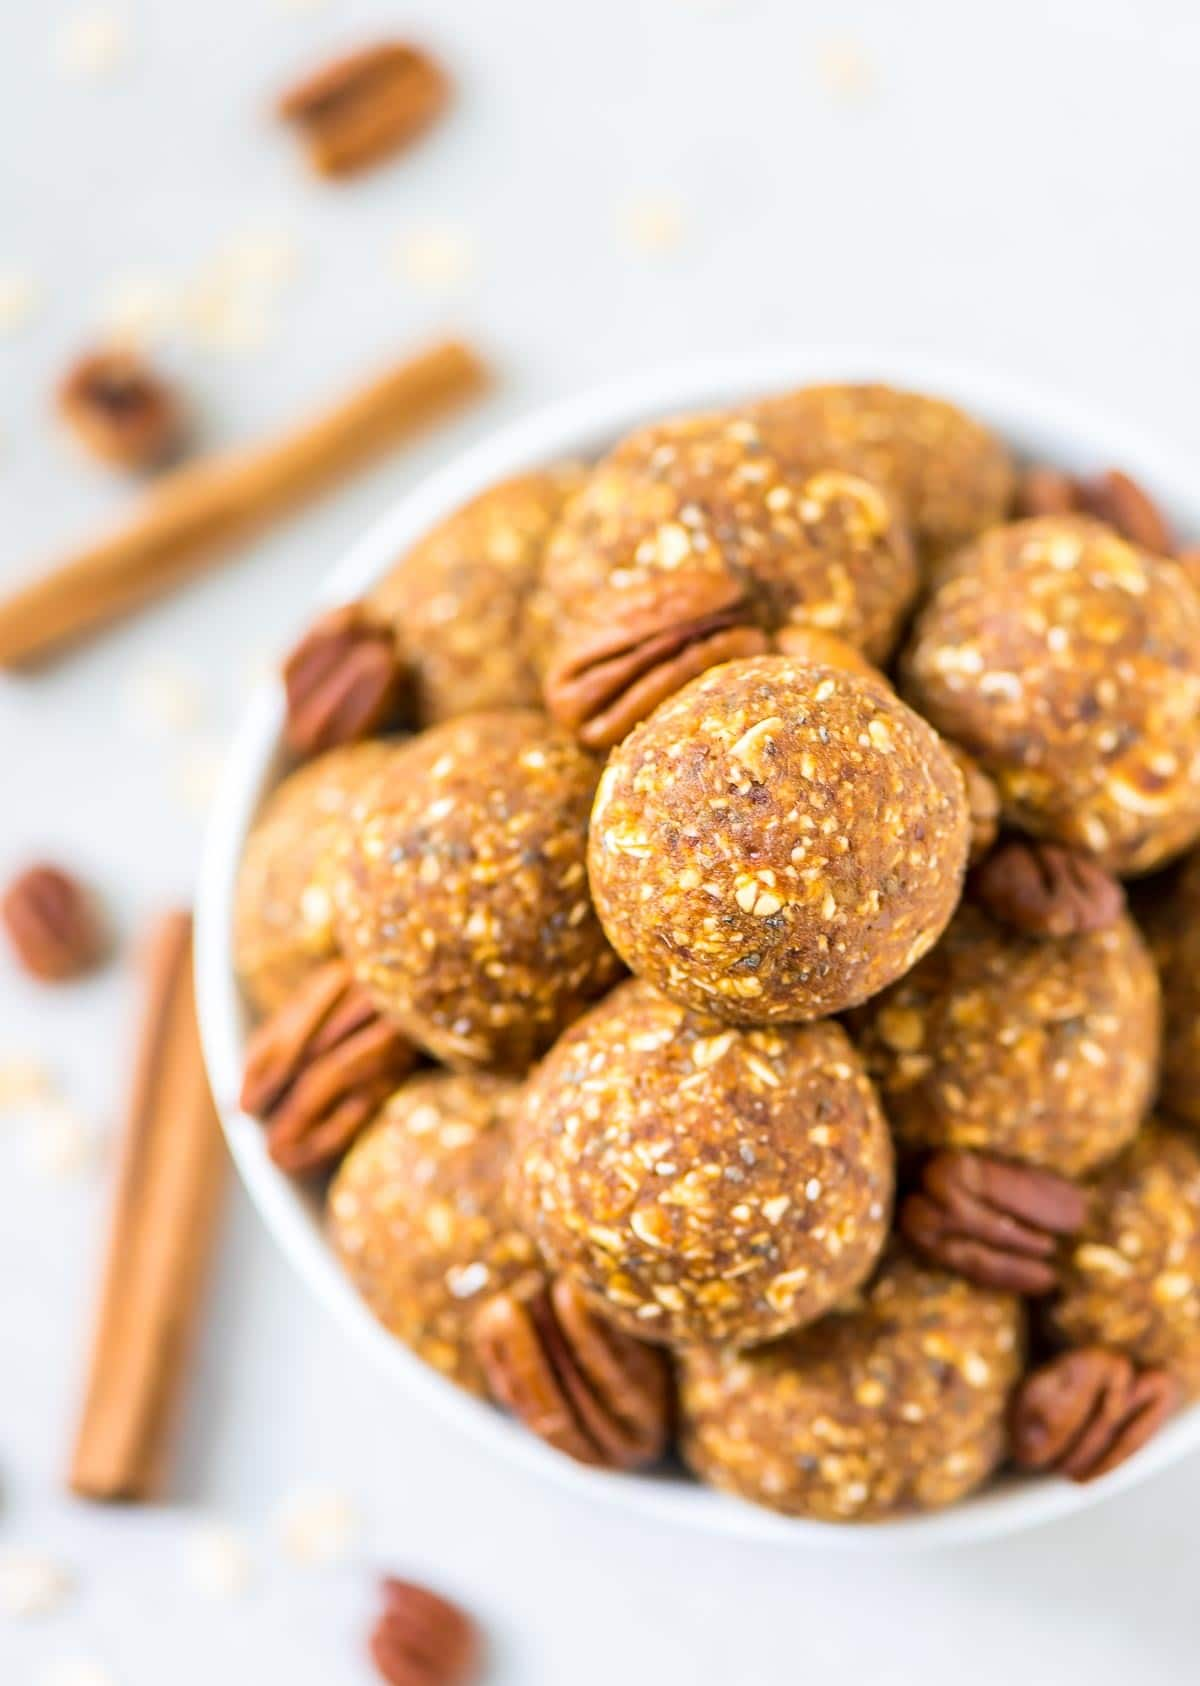 15 Healthy Snacks You Can Take to Work recommendations